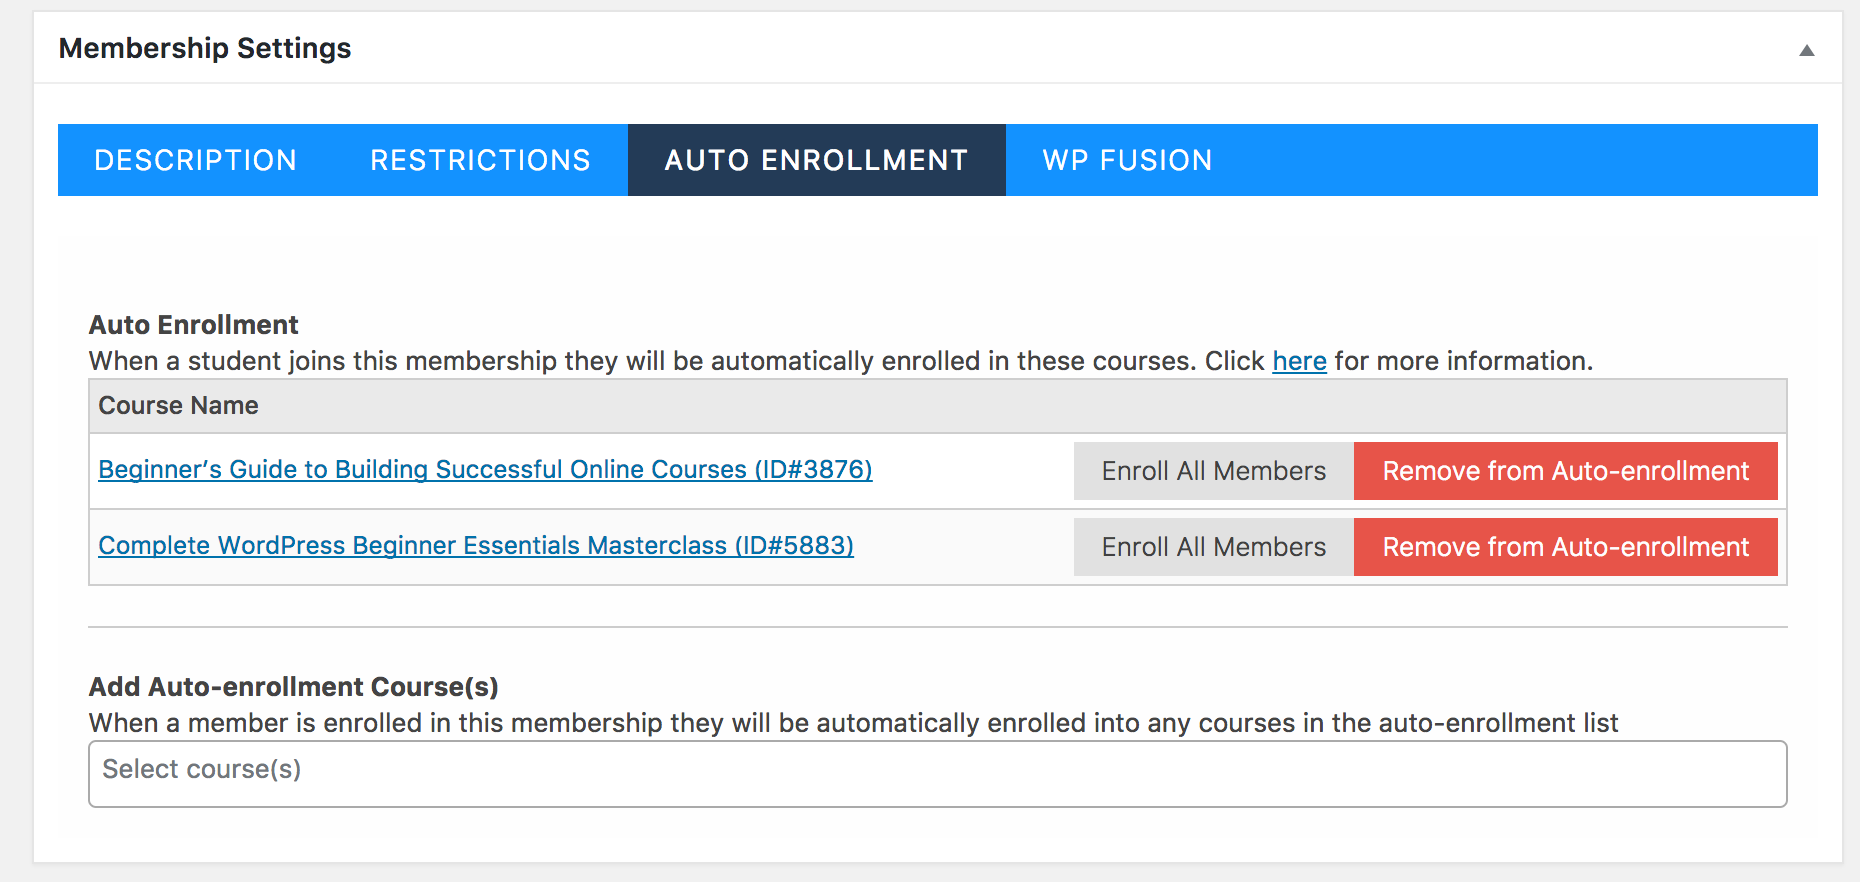 LifterLMS Membership Course Bundles and Auto Enrollment